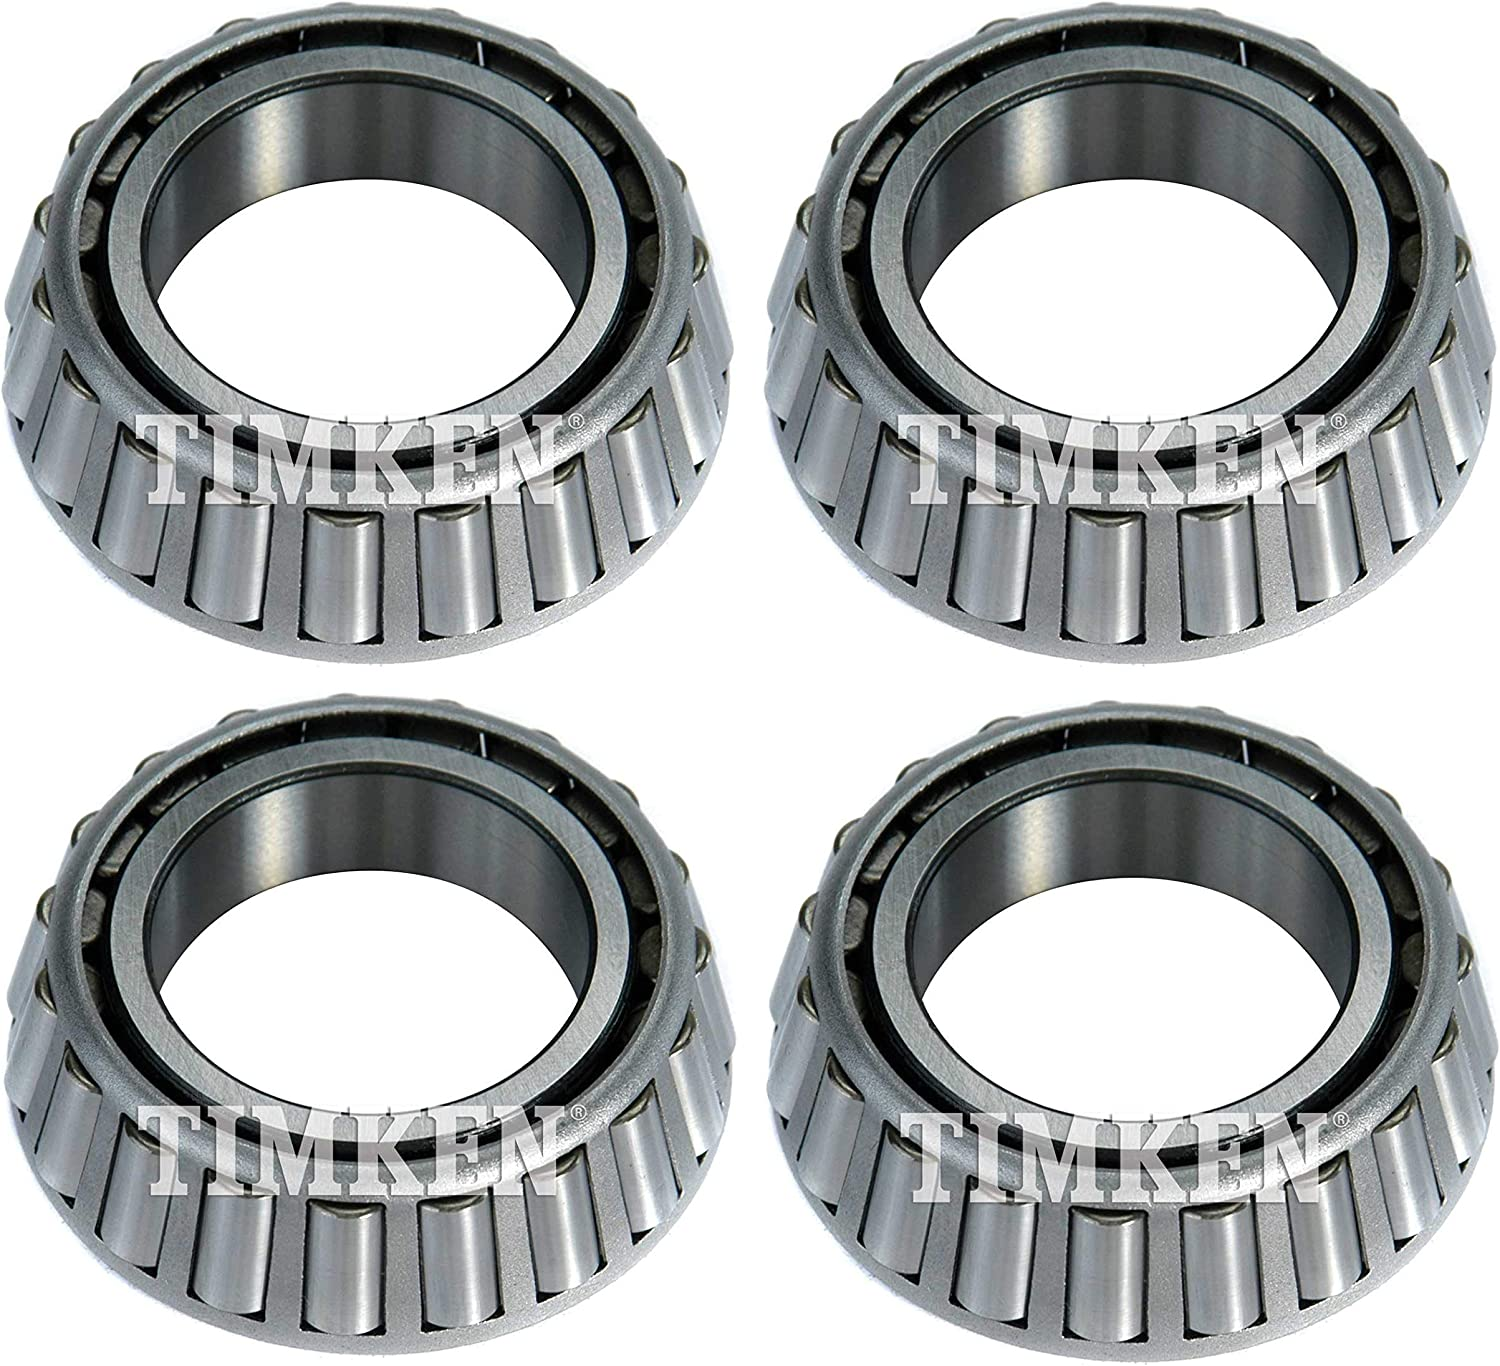 Front Inner /& Outer Wheel Bearing Kit Timken For Chevy GMC C3500 RWD 15000 GVWR